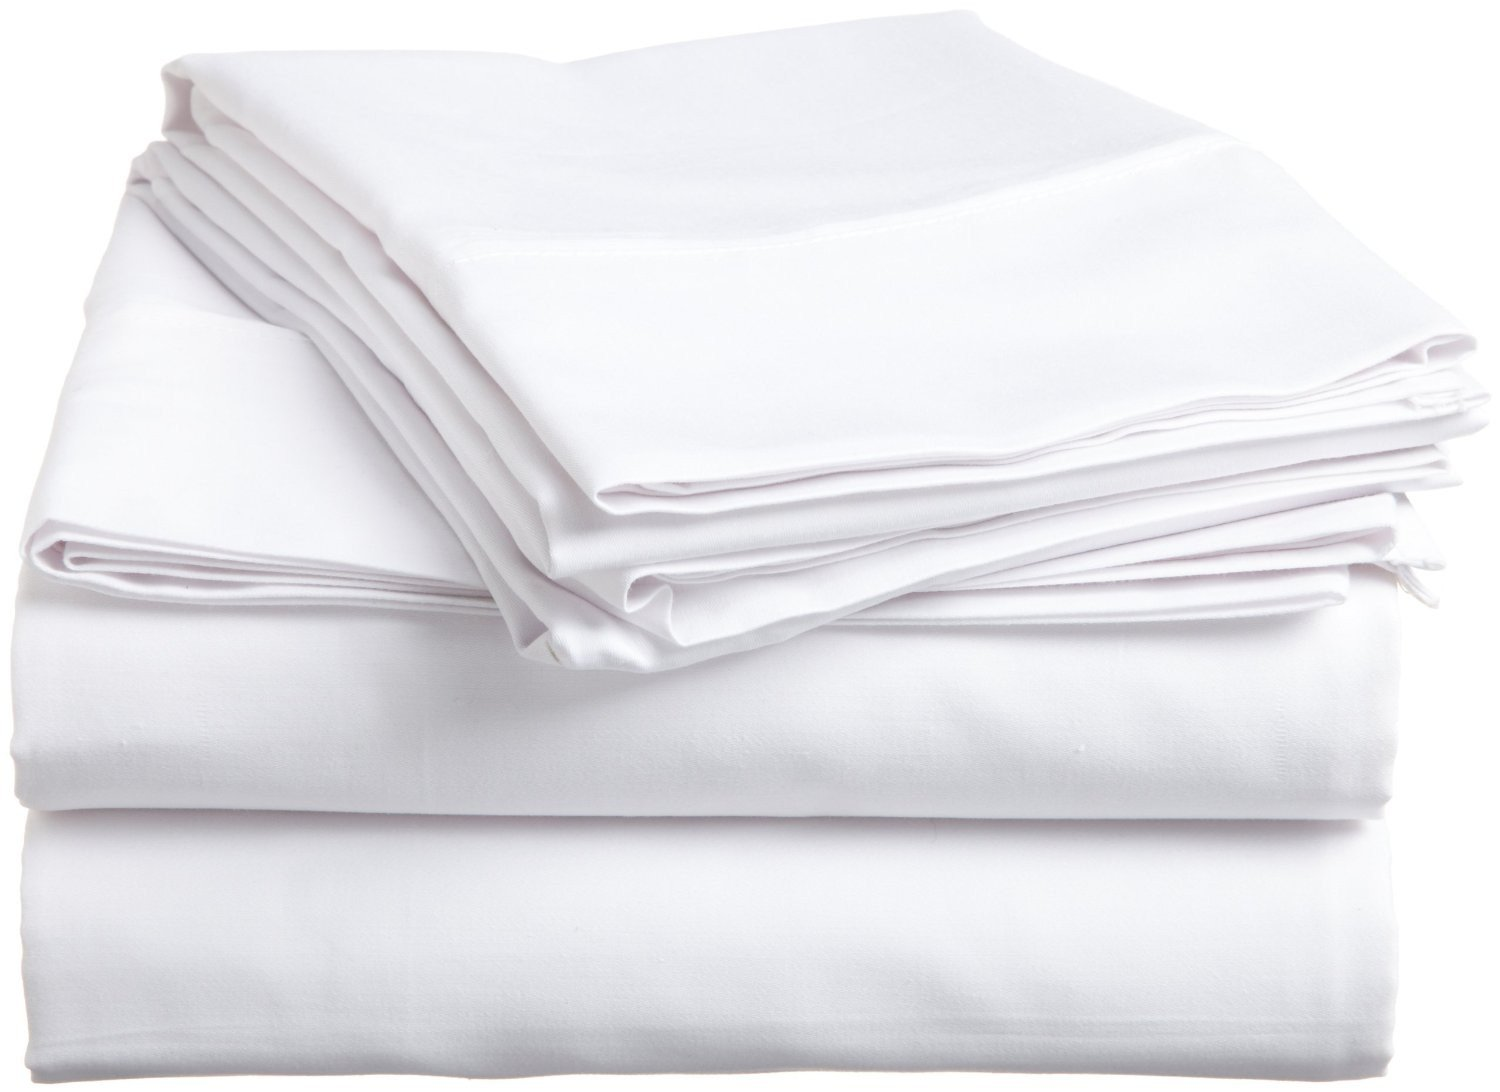 JMR Flat Draw Bed Sheets Muslin T130 Cotton Blend (54x90, brown 12 piece)